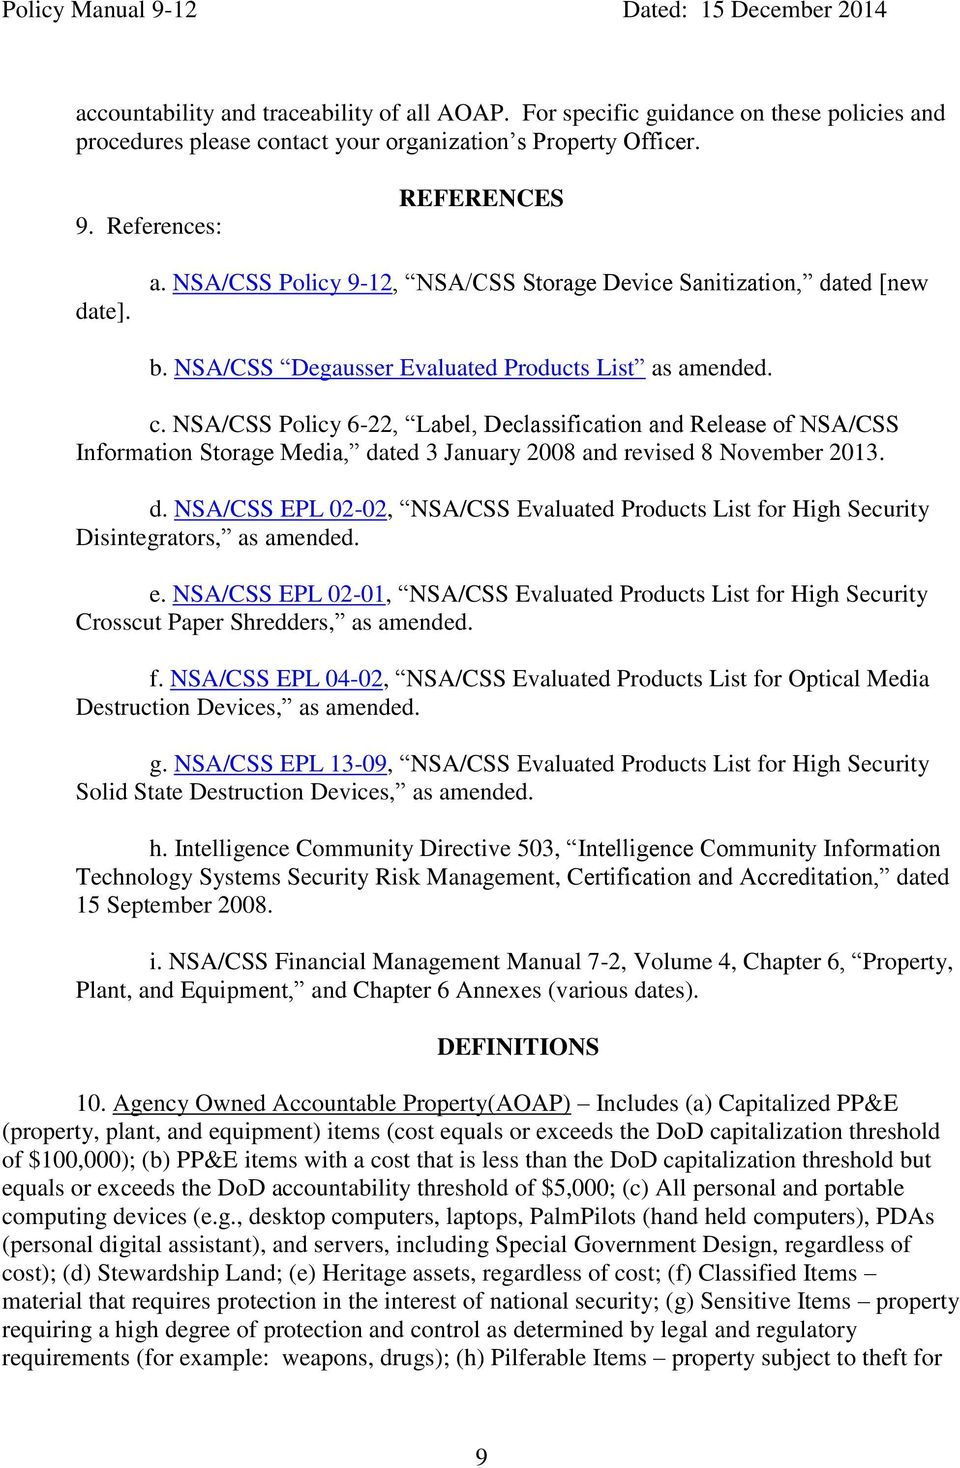 e. NSA/CSS EPL 02-01, NSA/CSS Evaluated Products List for High Security Crosscut Paper Shredders, as amended. f. NSA/CSS EPL 04-02, NSA/CSS Evaluated Products List for Optical Media Destruction Devices, as amended.